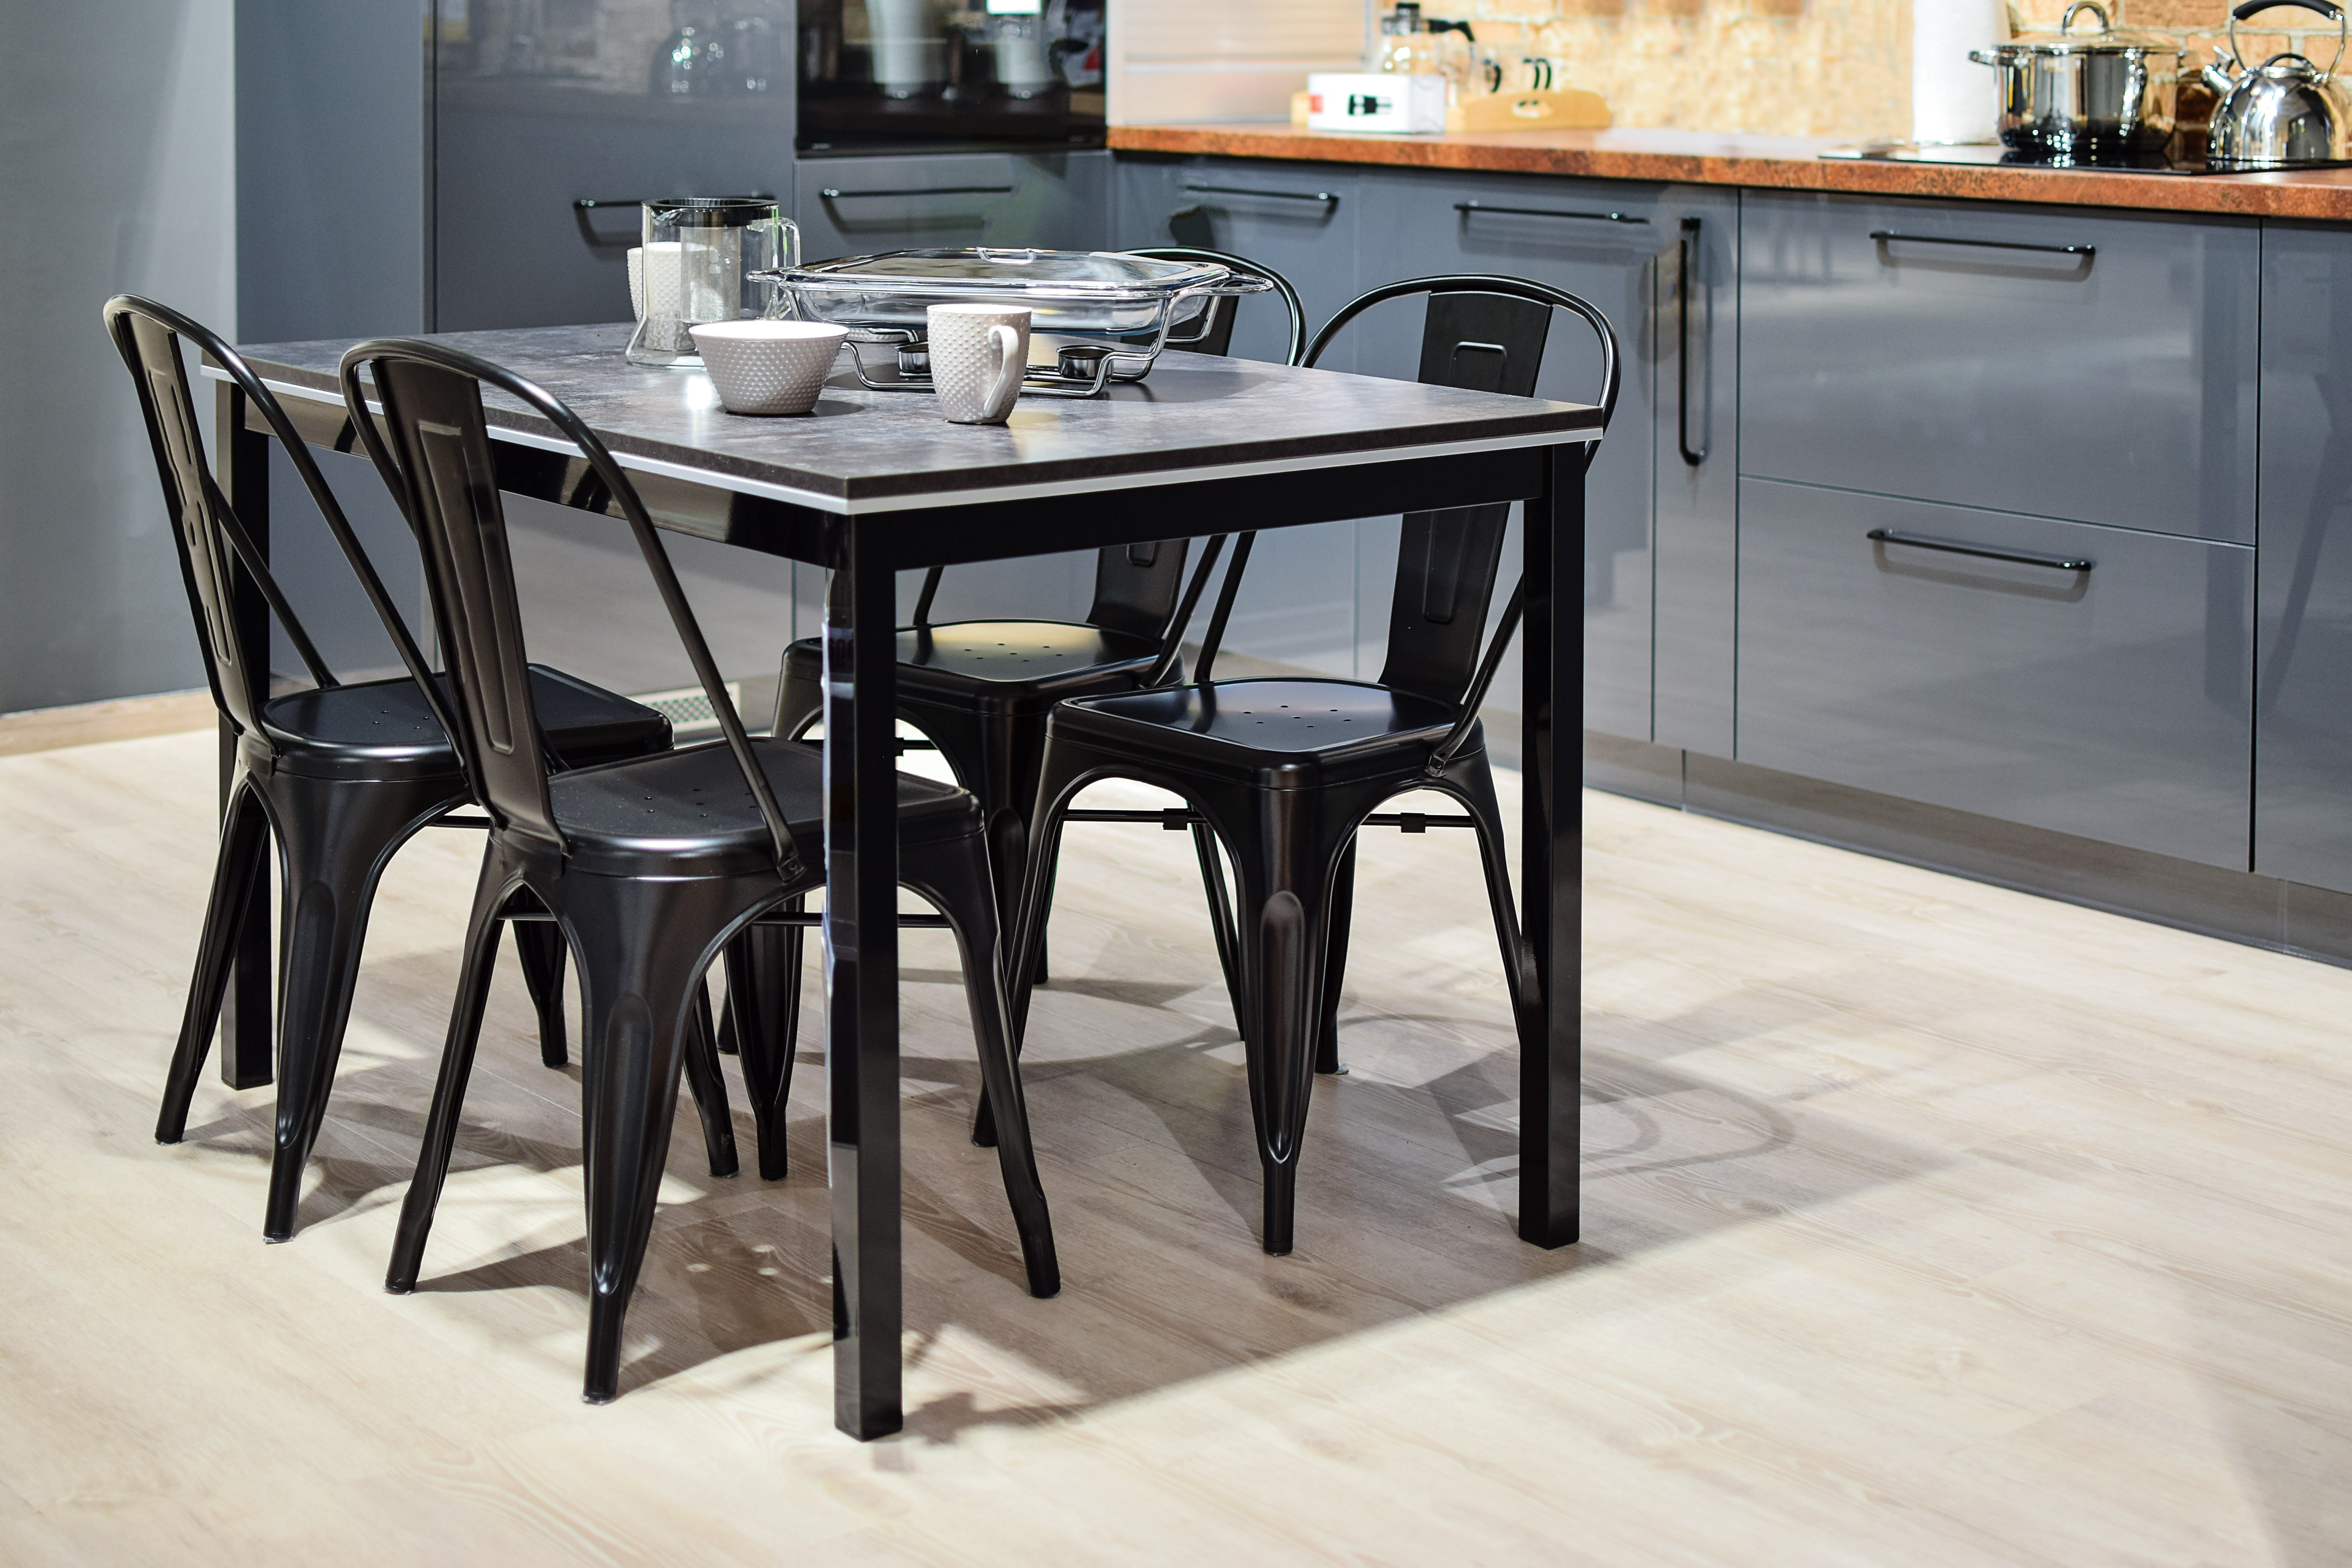 White ceramic mug on black dining table with four chair set photo